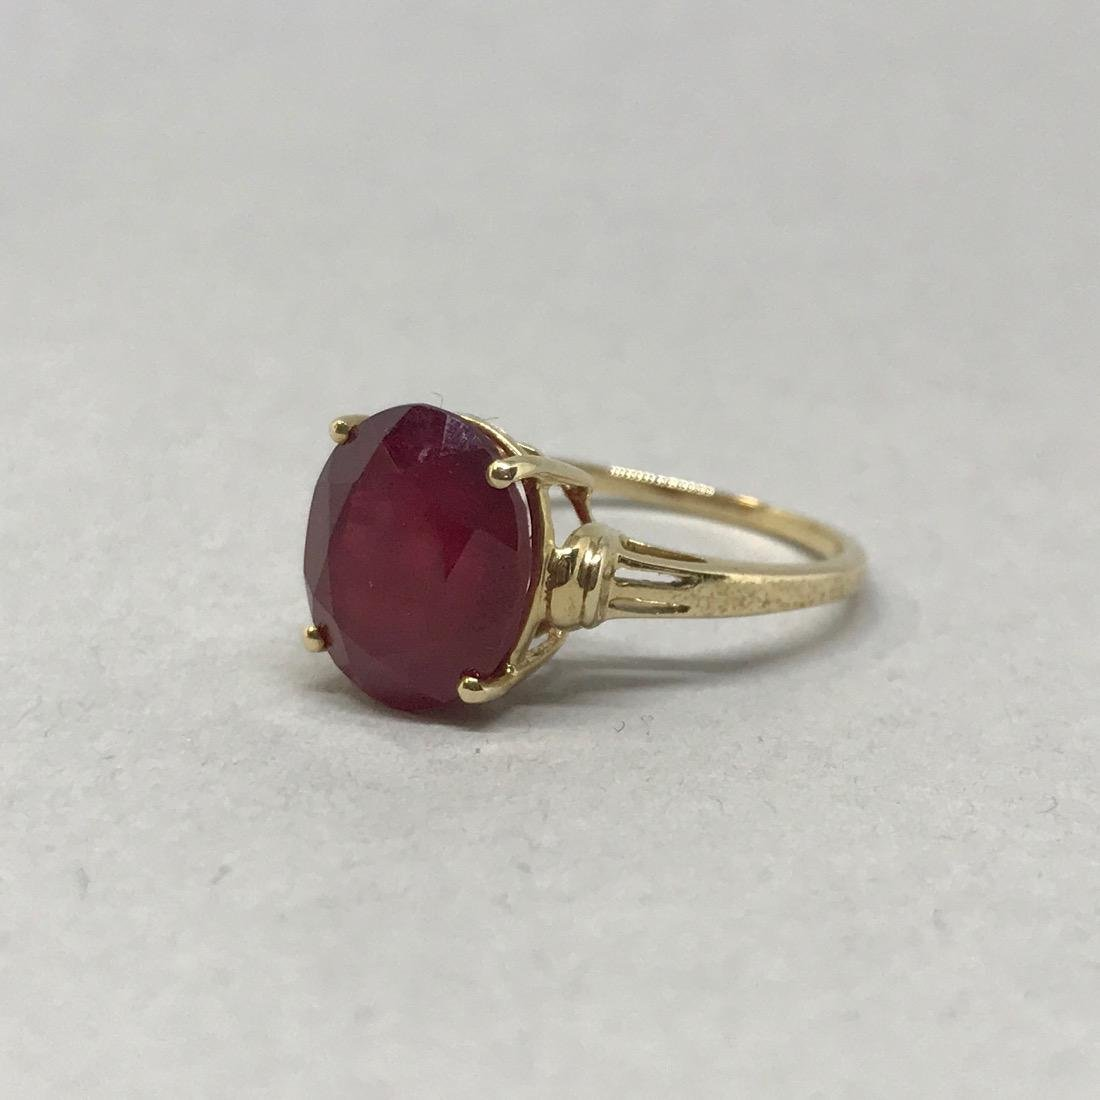 10K Gold Ruby Ring - 2